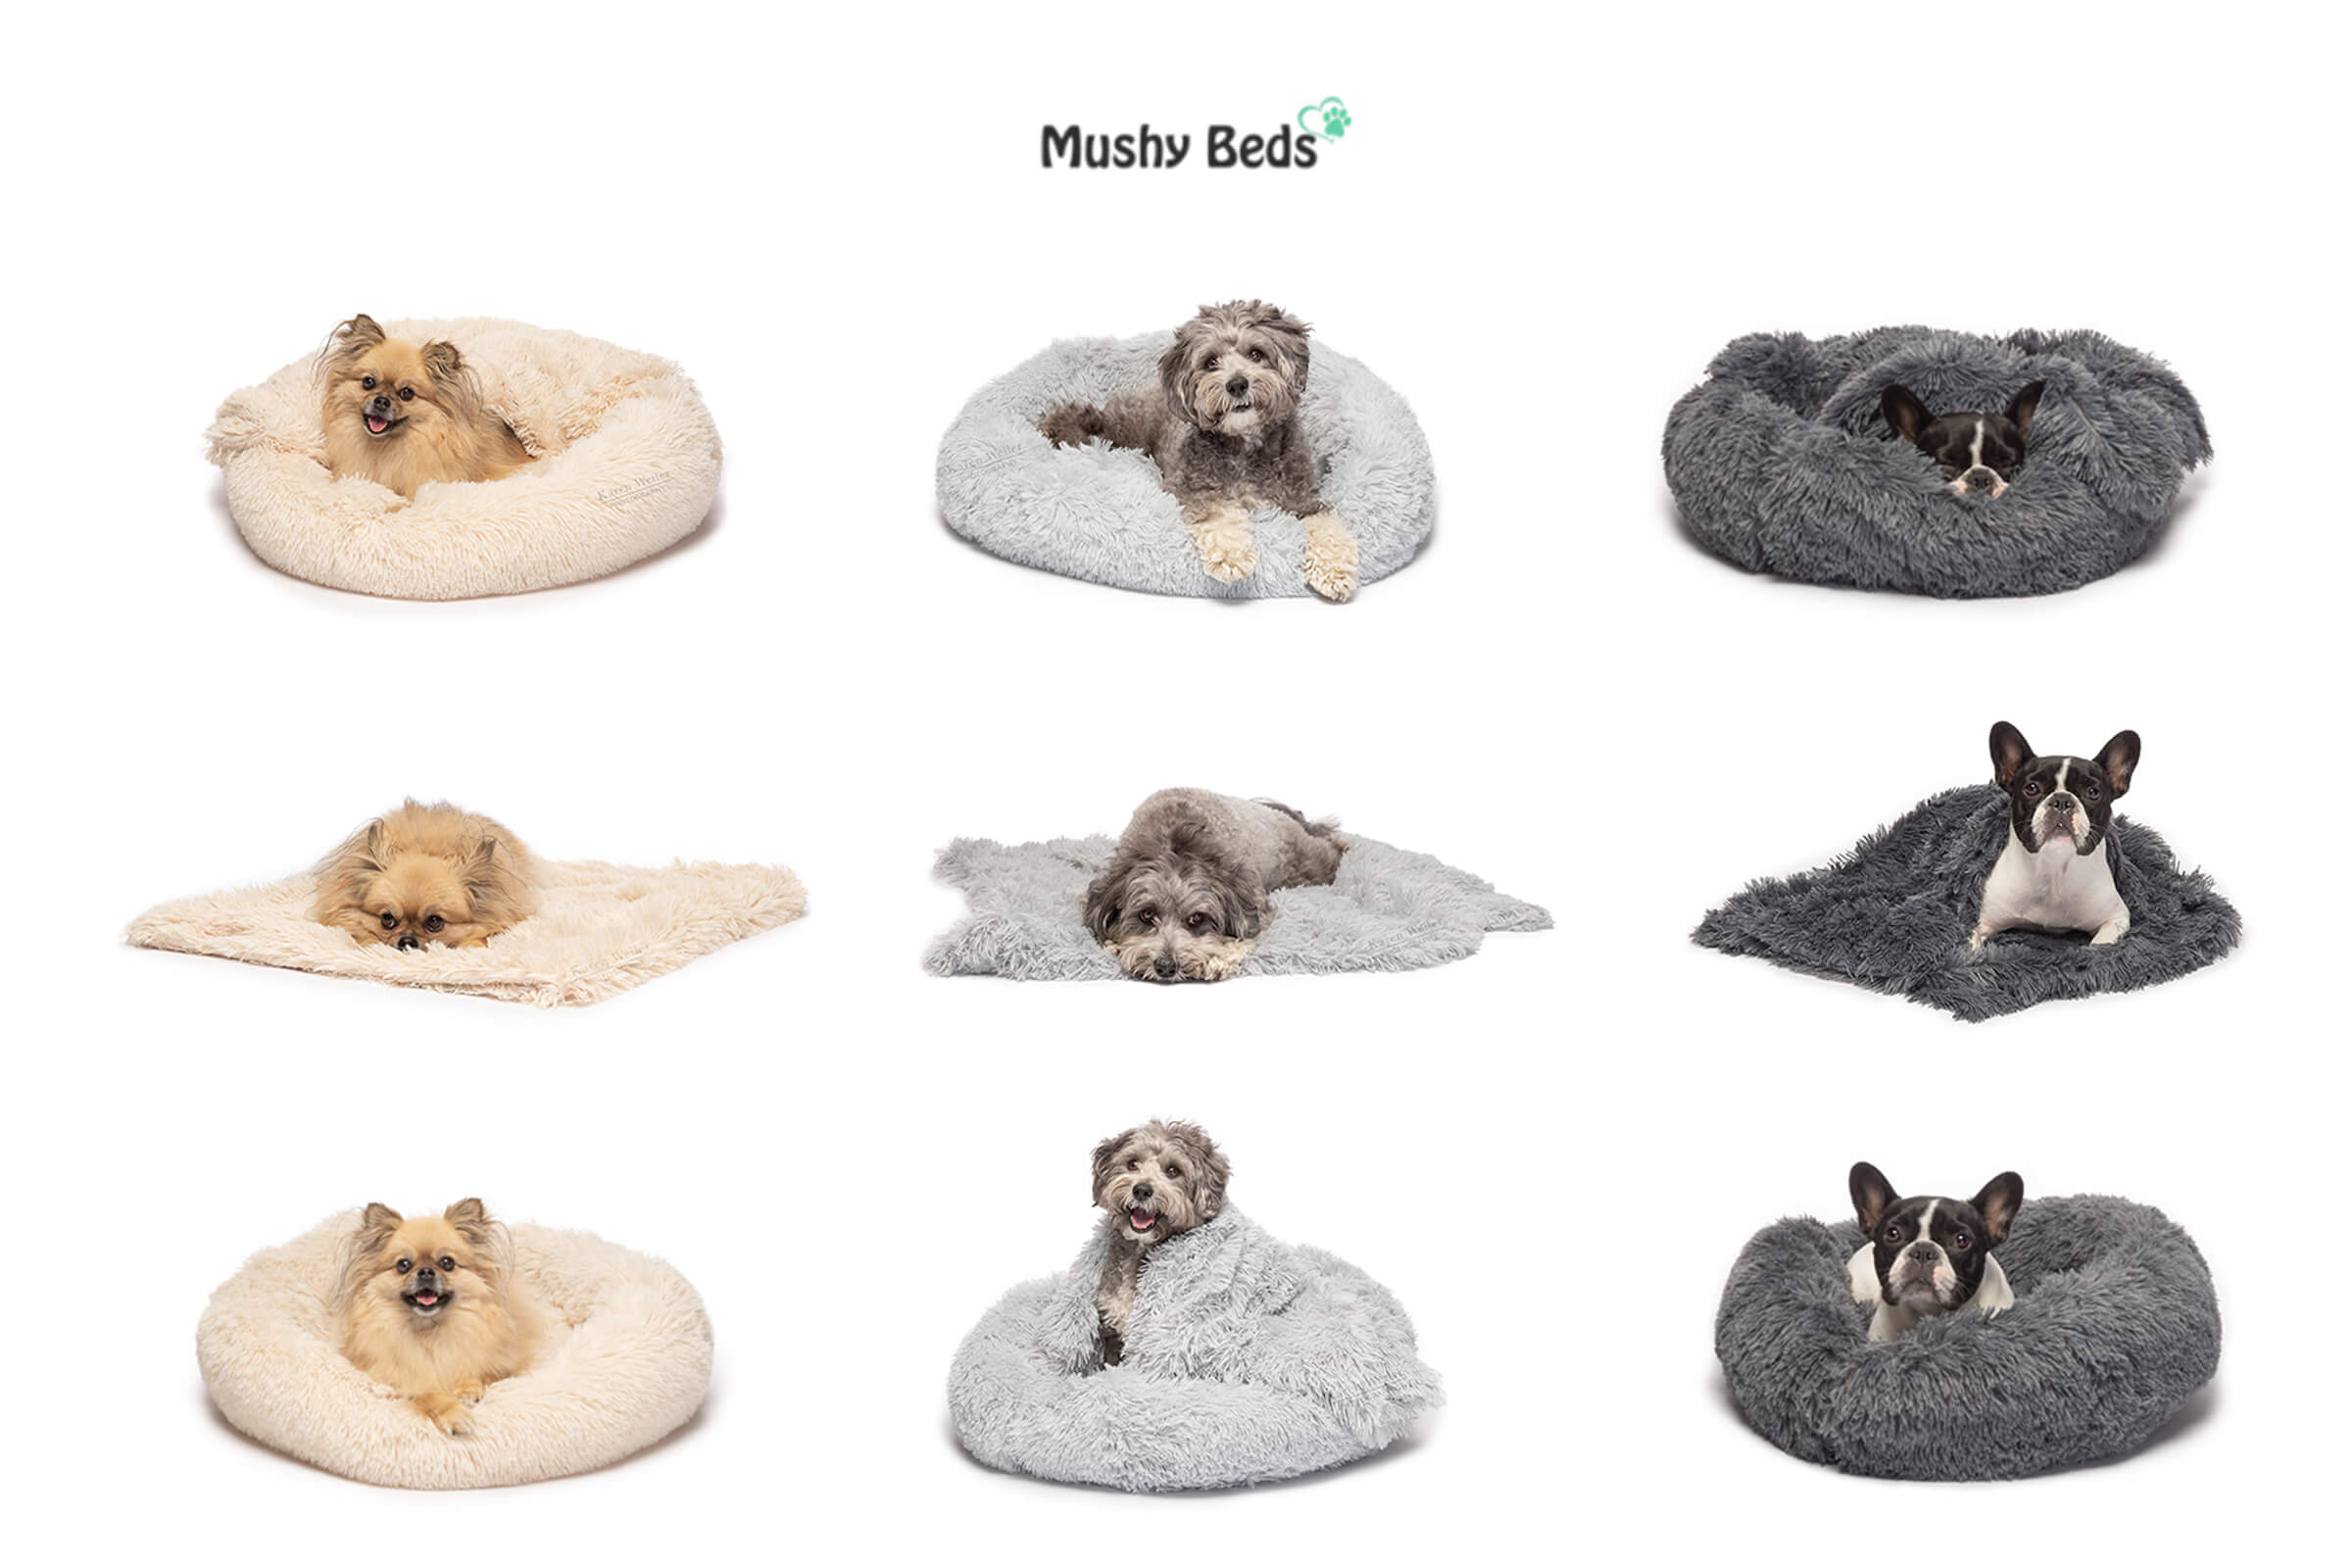 commercial photography for pet beds